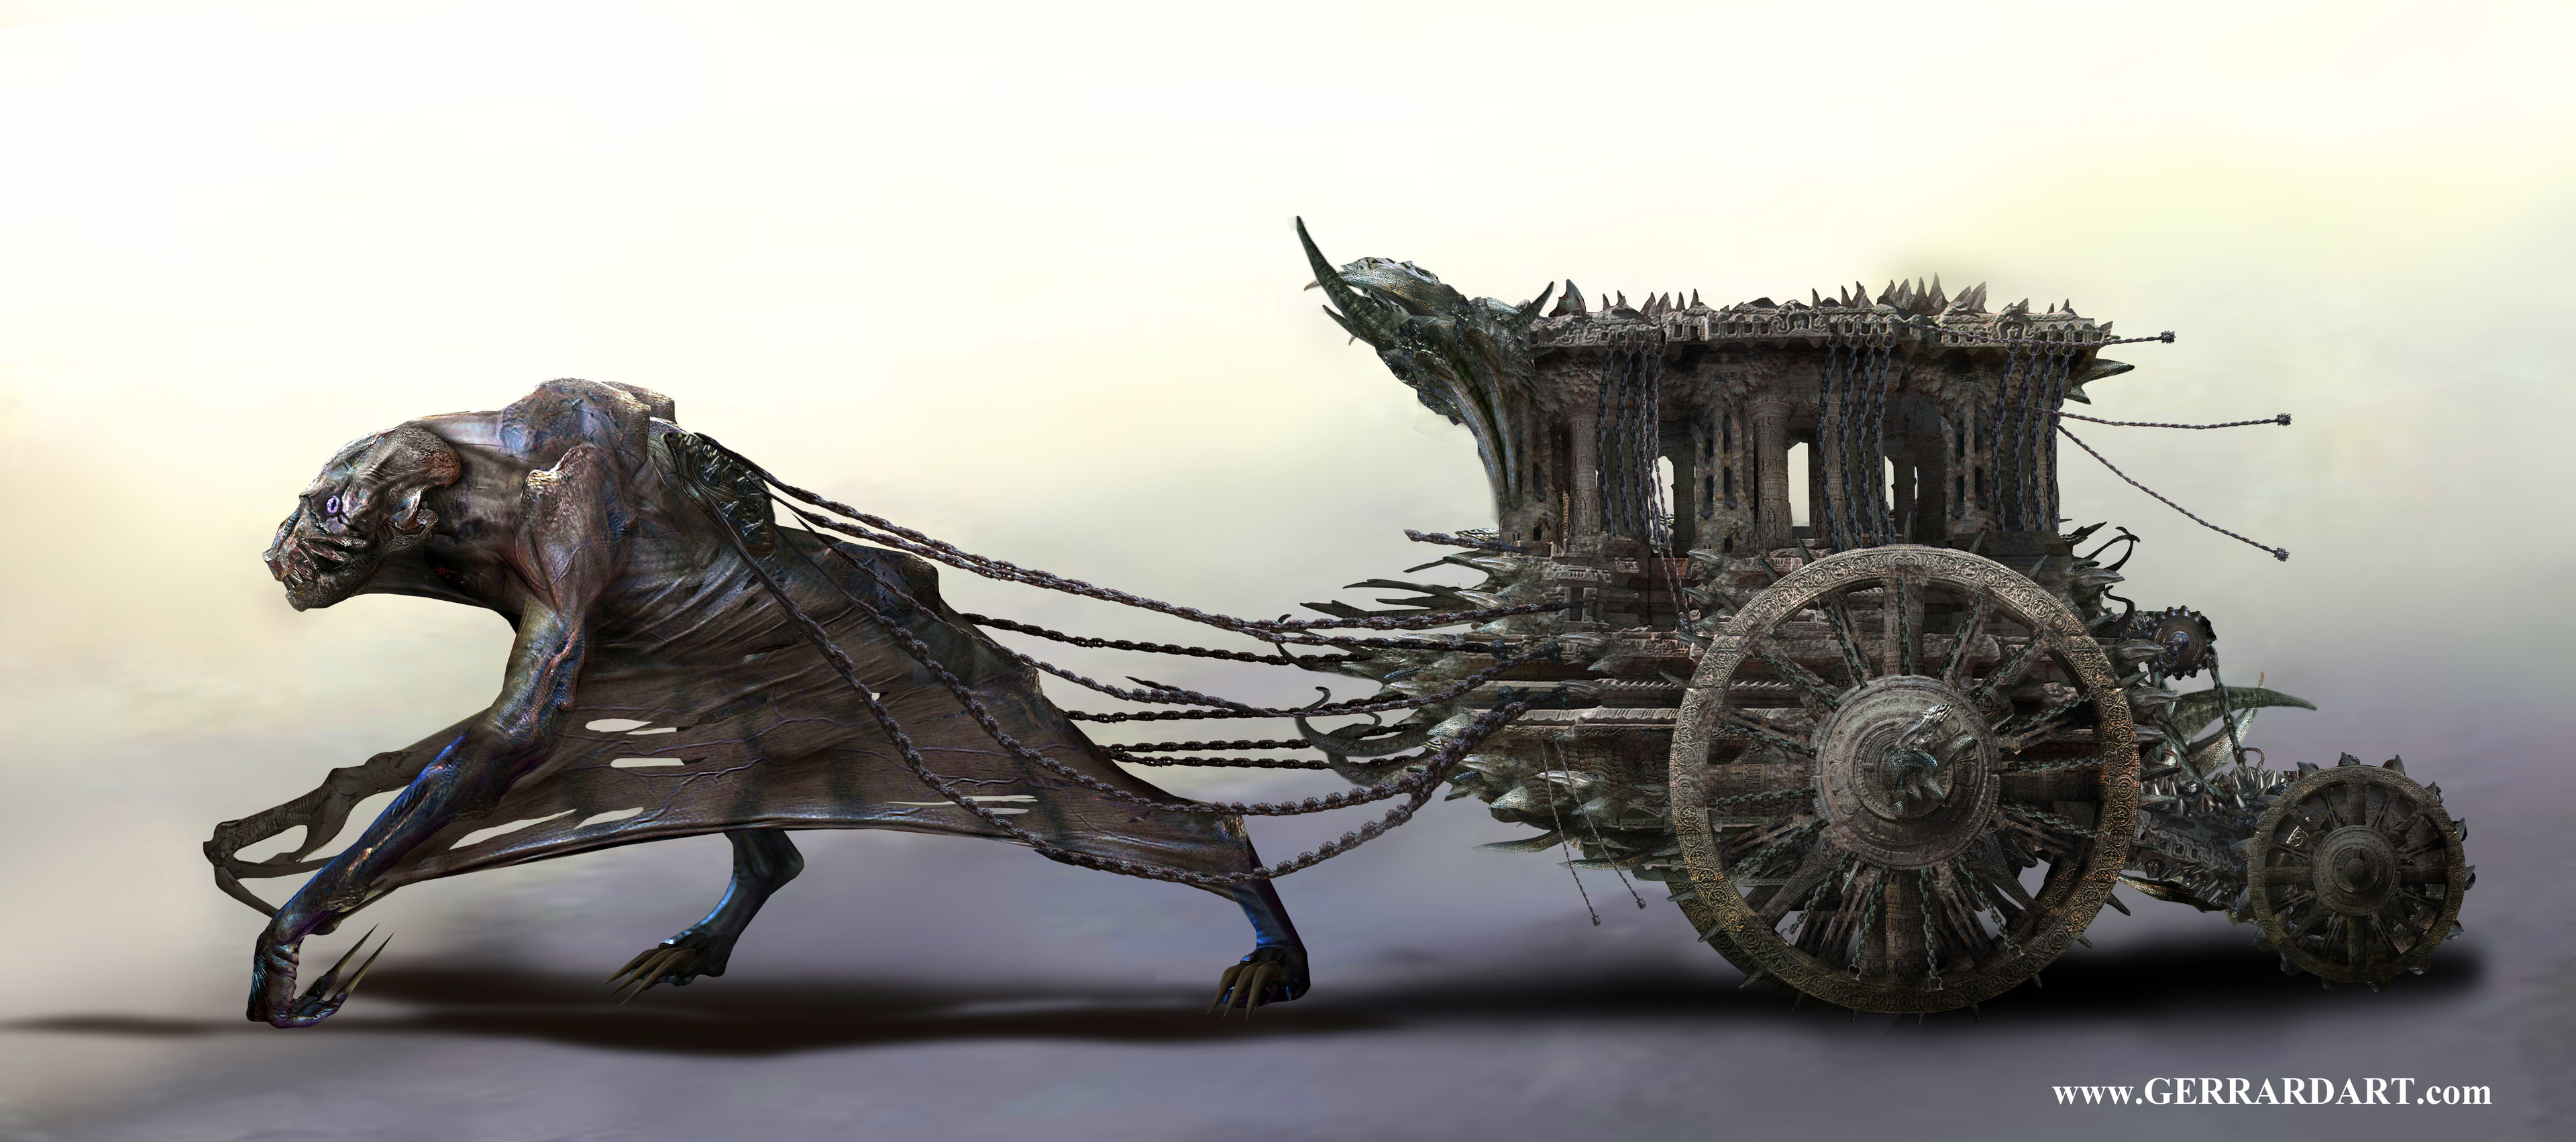 Carriage for an unreleased game